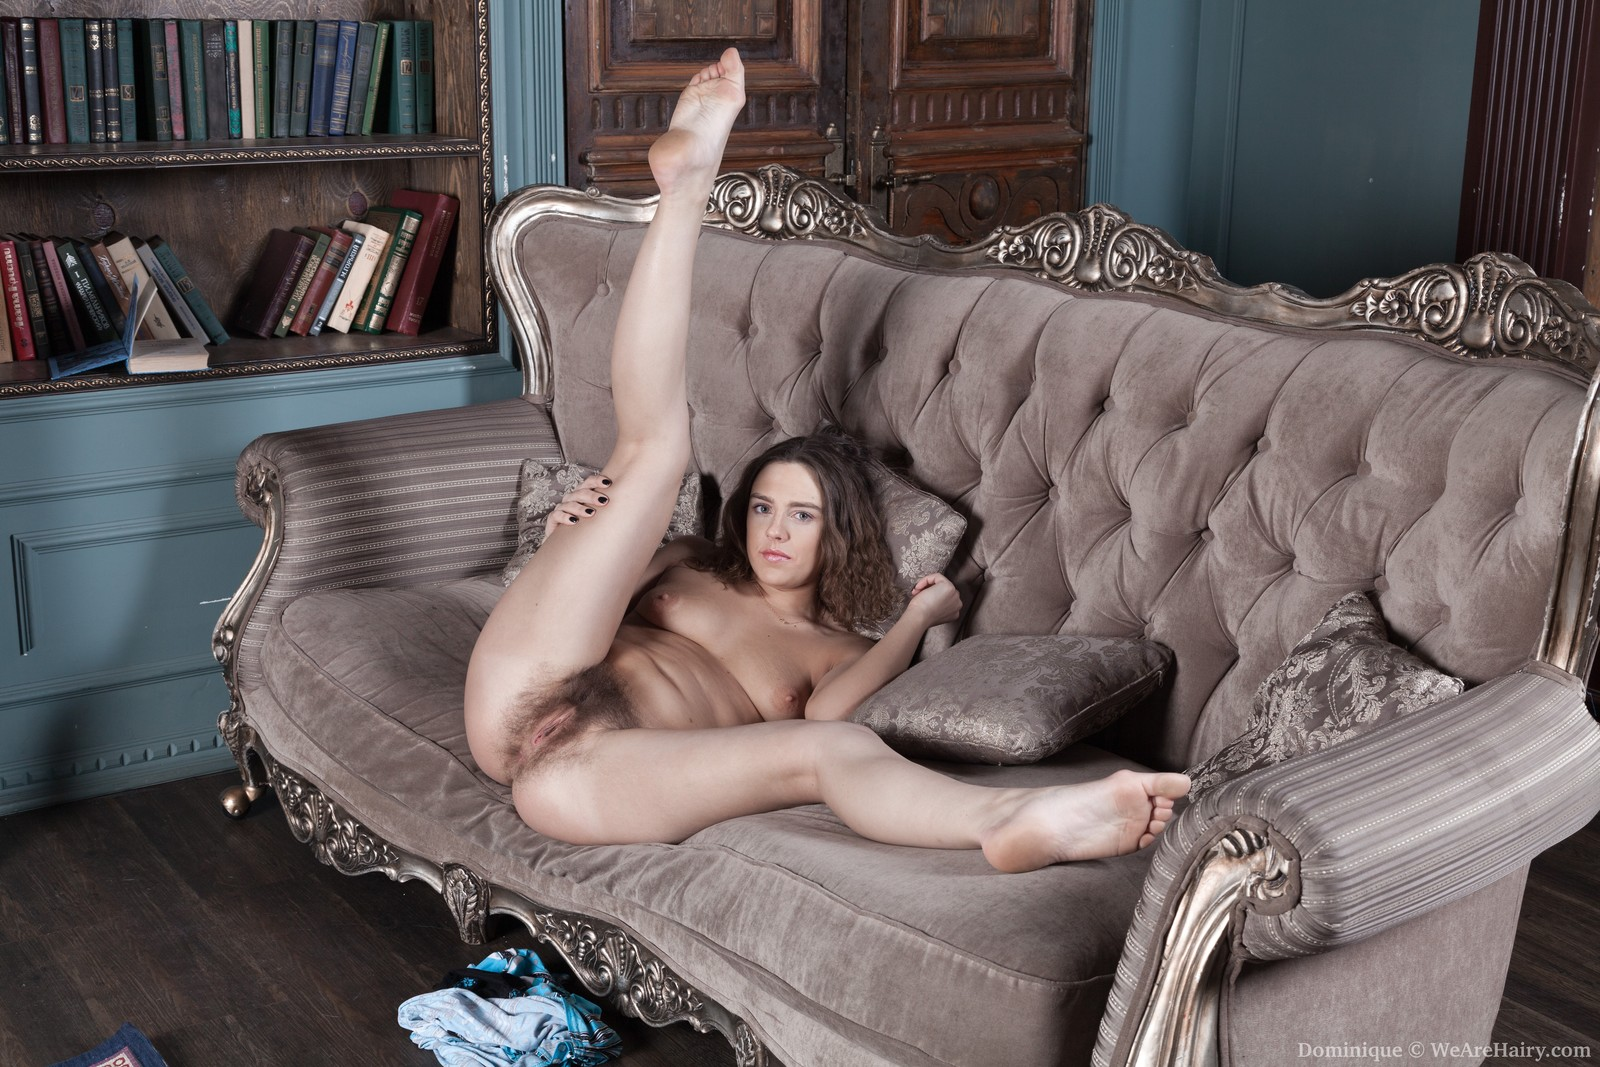 dominique-touches-her-hairy-body-on-a-couch14.jpg